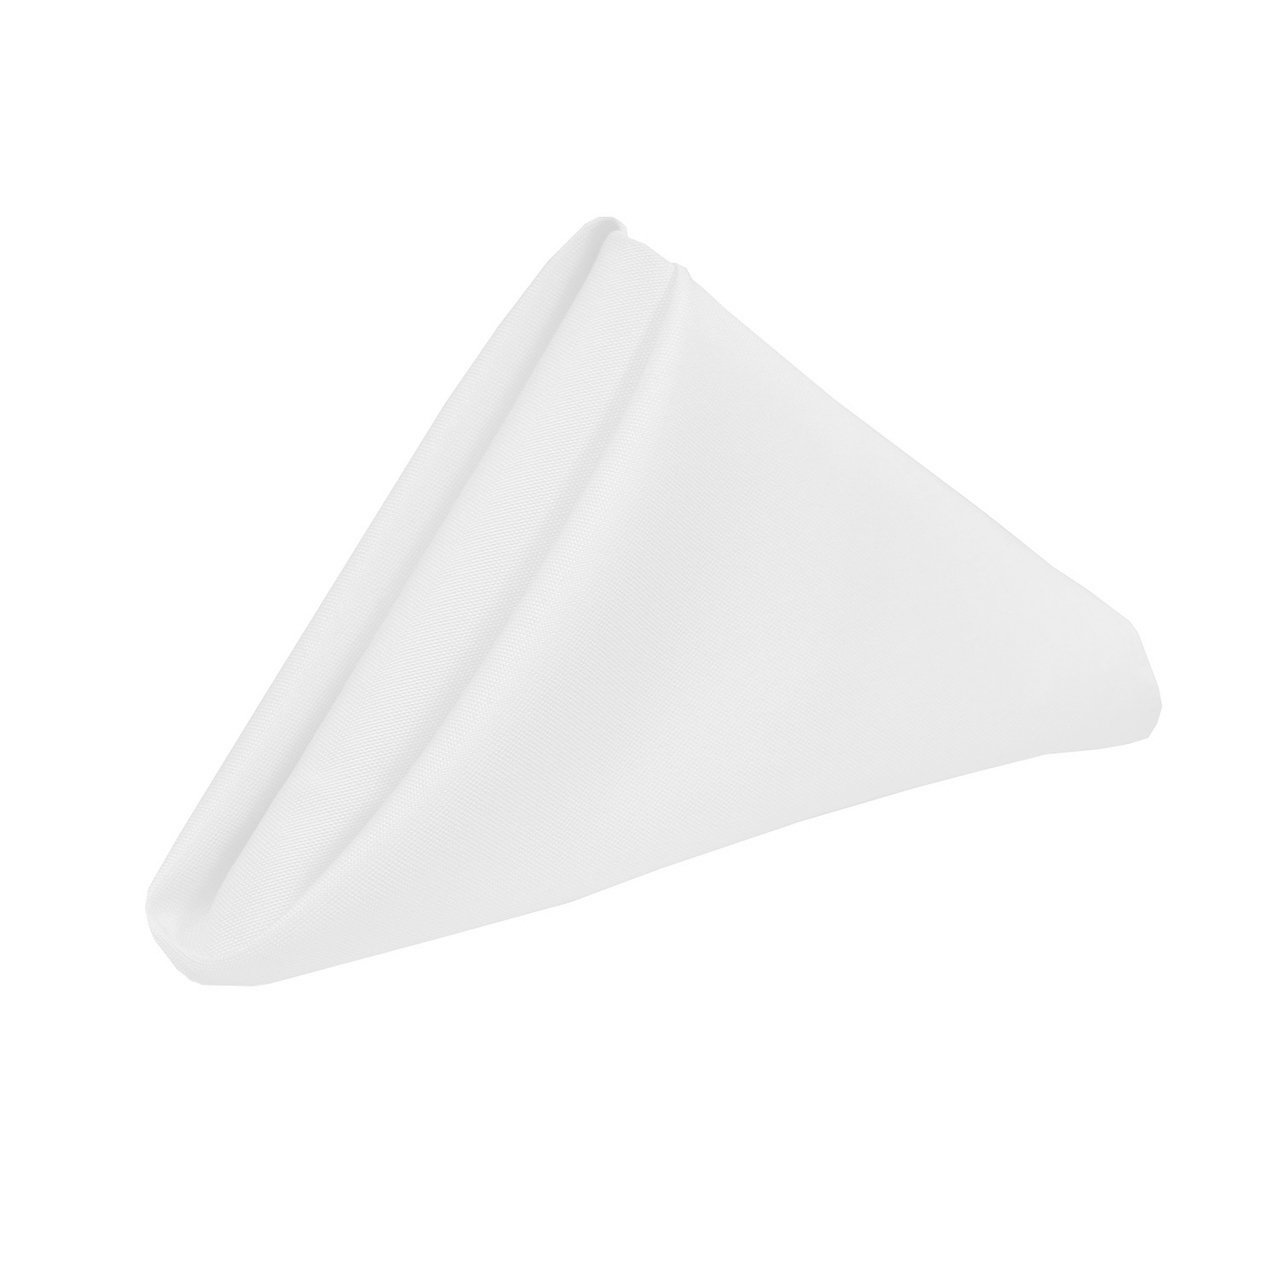 YCC Linen - 20 Inch Square Premium Polyester Cloth Napkins 10 Pack - White, Oversized, Double Folded and Hemmed Table Napkins for Restaurant, Bistro, Wedding, Thanksgiving and Christmas